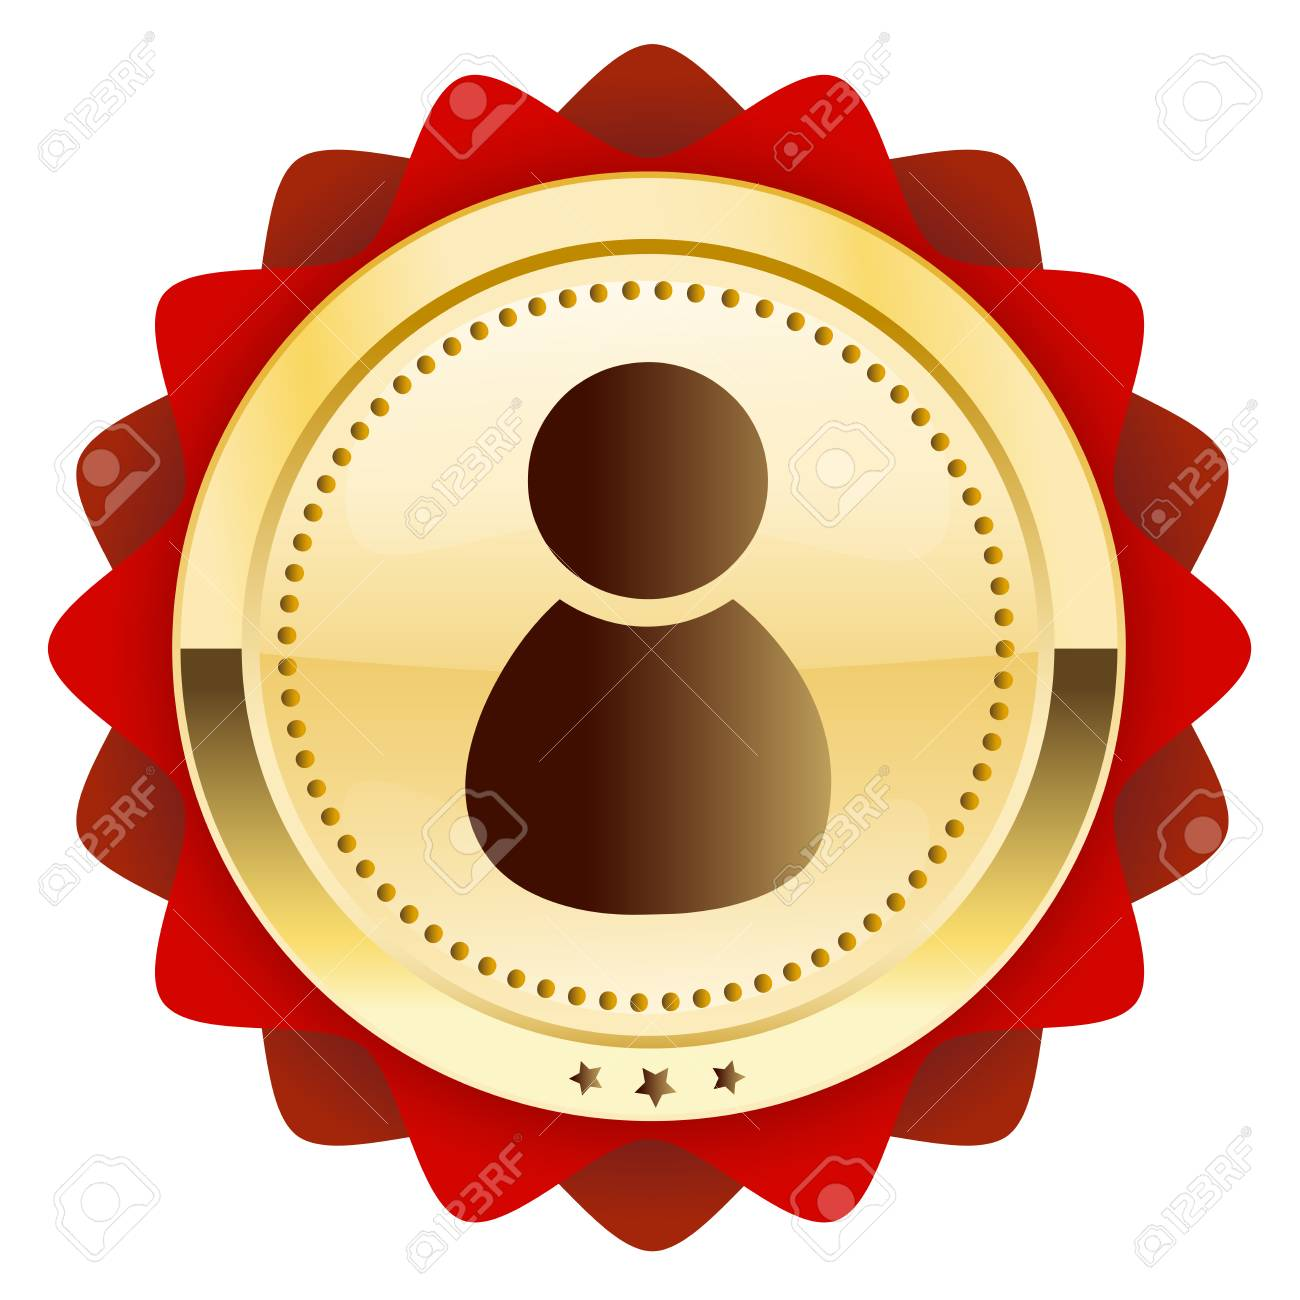 Admin Or best service seal or icon with admin or person symbol. glossy..